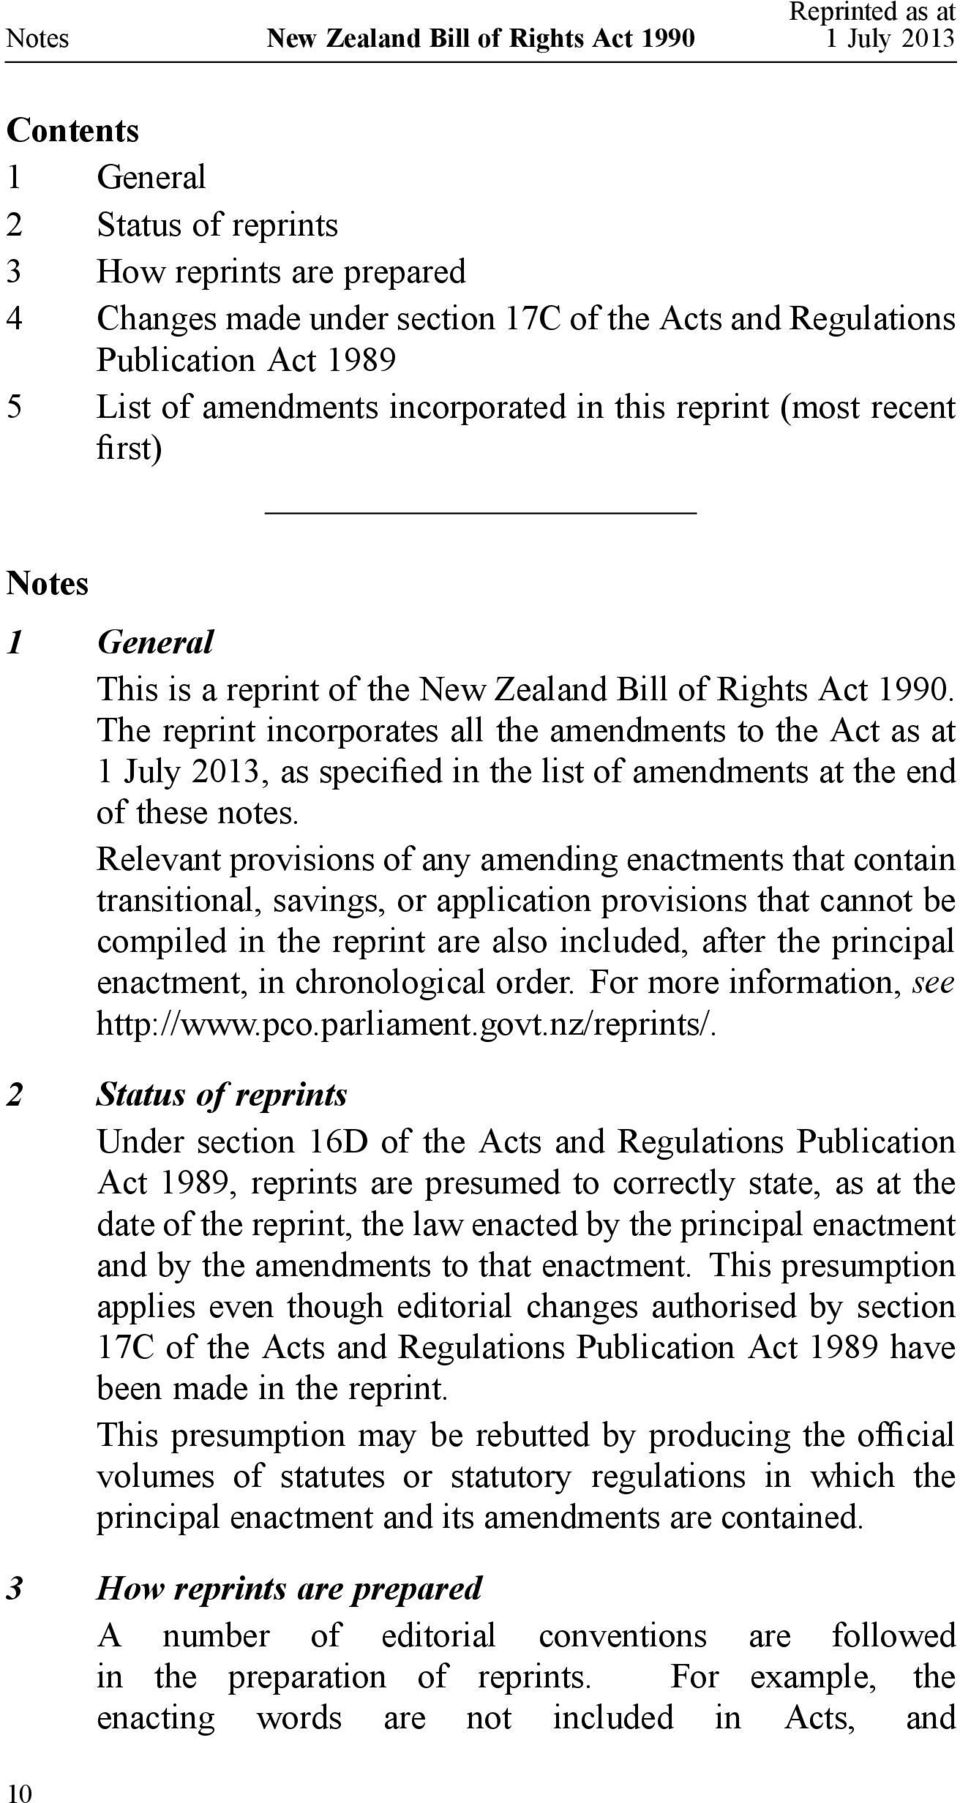 The reprint incorporates all the amendments to the Act as at 1 July 2013, as specified in the list of amendments at the end of these notes.